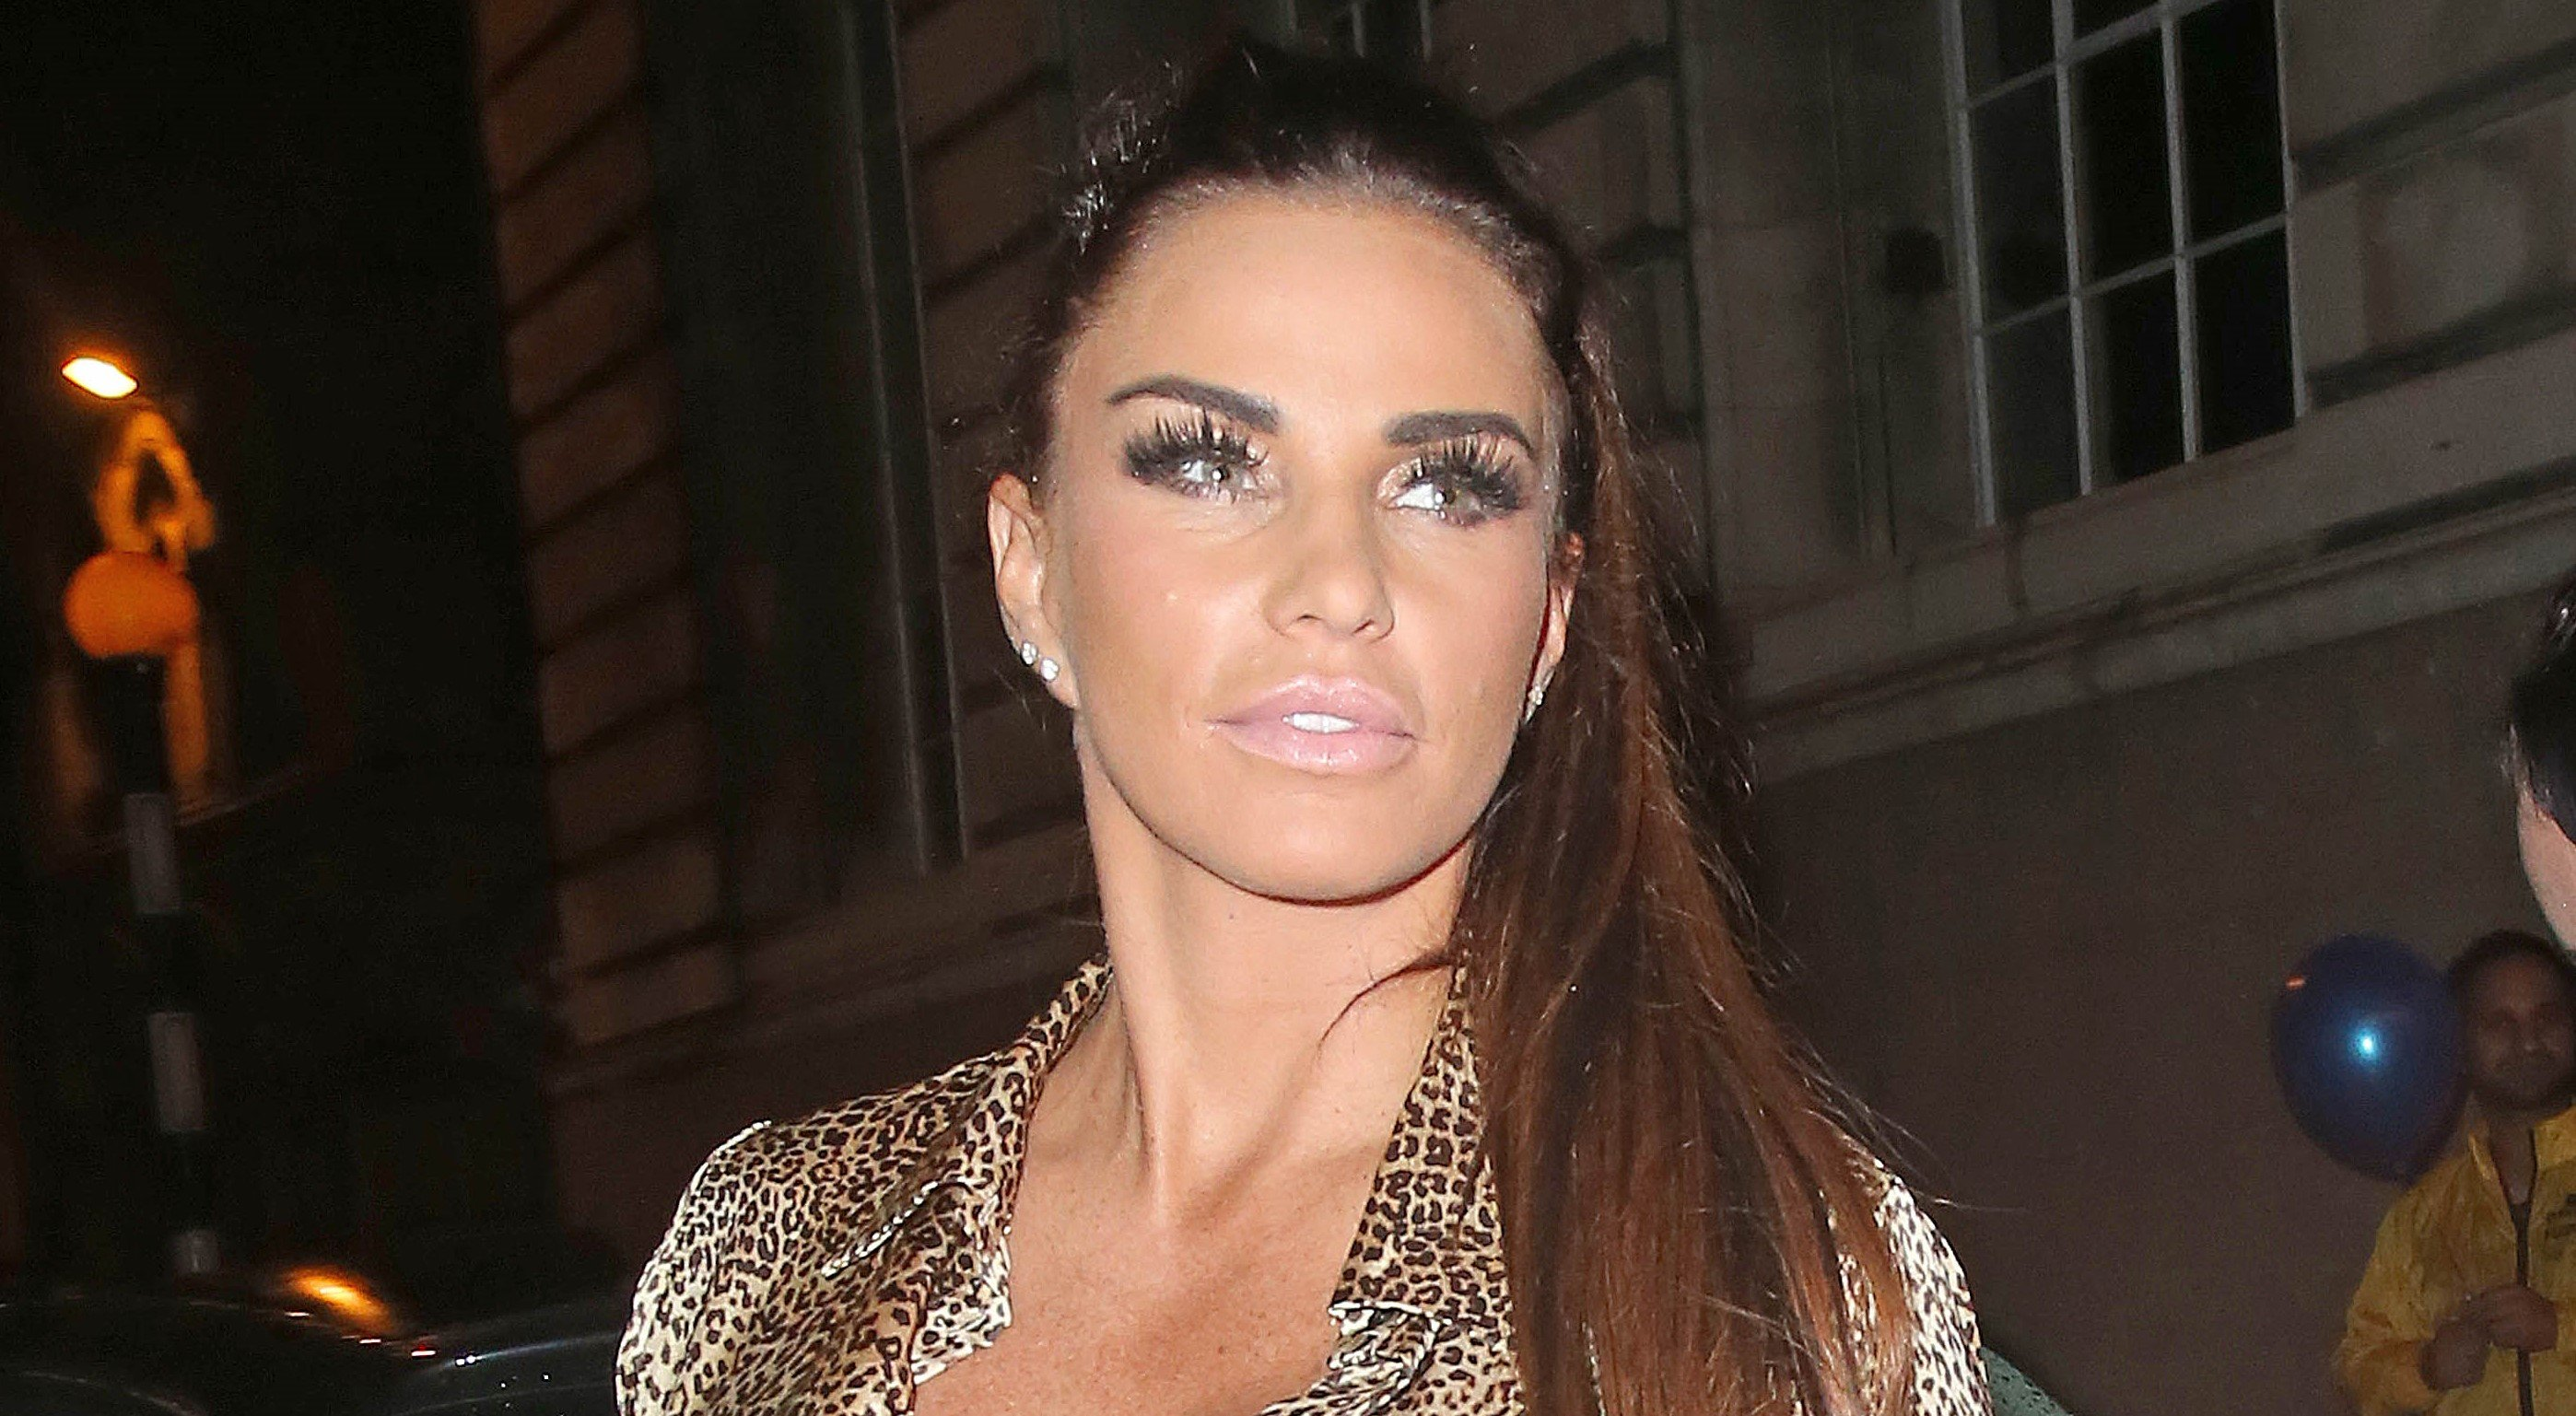 Katie Price divides fans with quote about being a mum